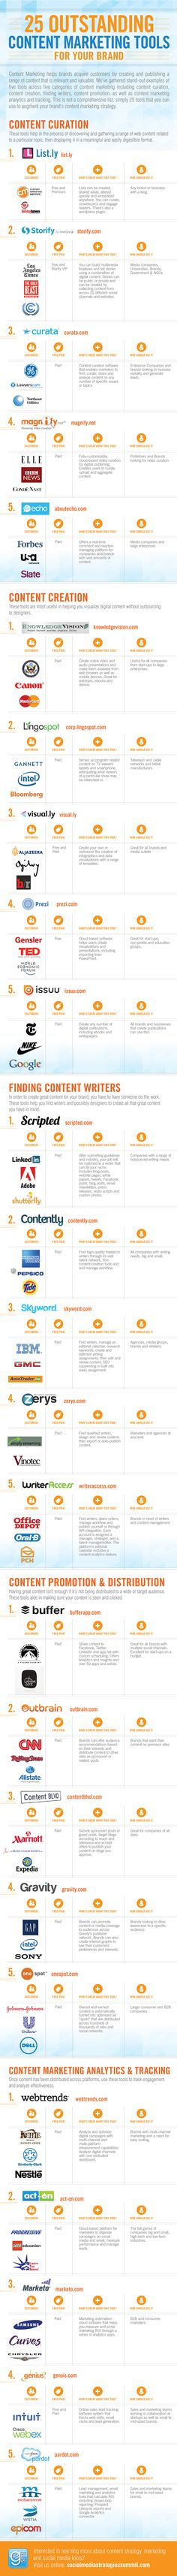 208 best Content Marketing Infographics images on Pinterest | Info ...